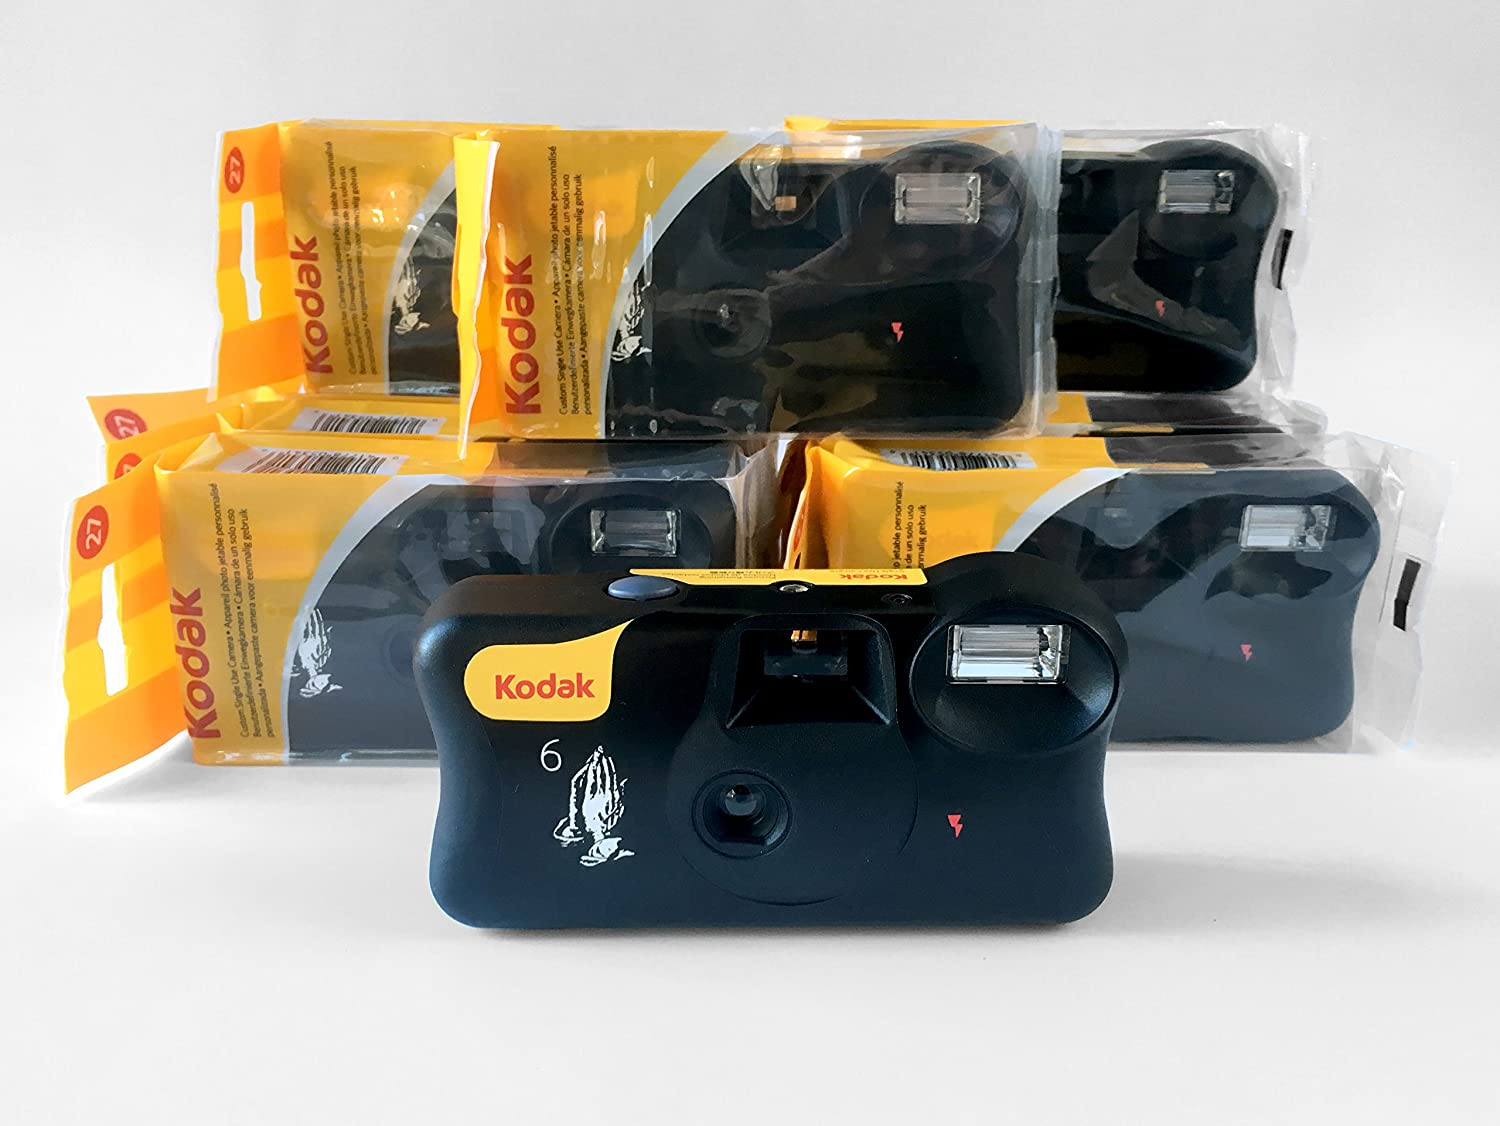 Kodak Drake Branded Disposable One Time Use 35mm Camera Flash Circuit Further Photo